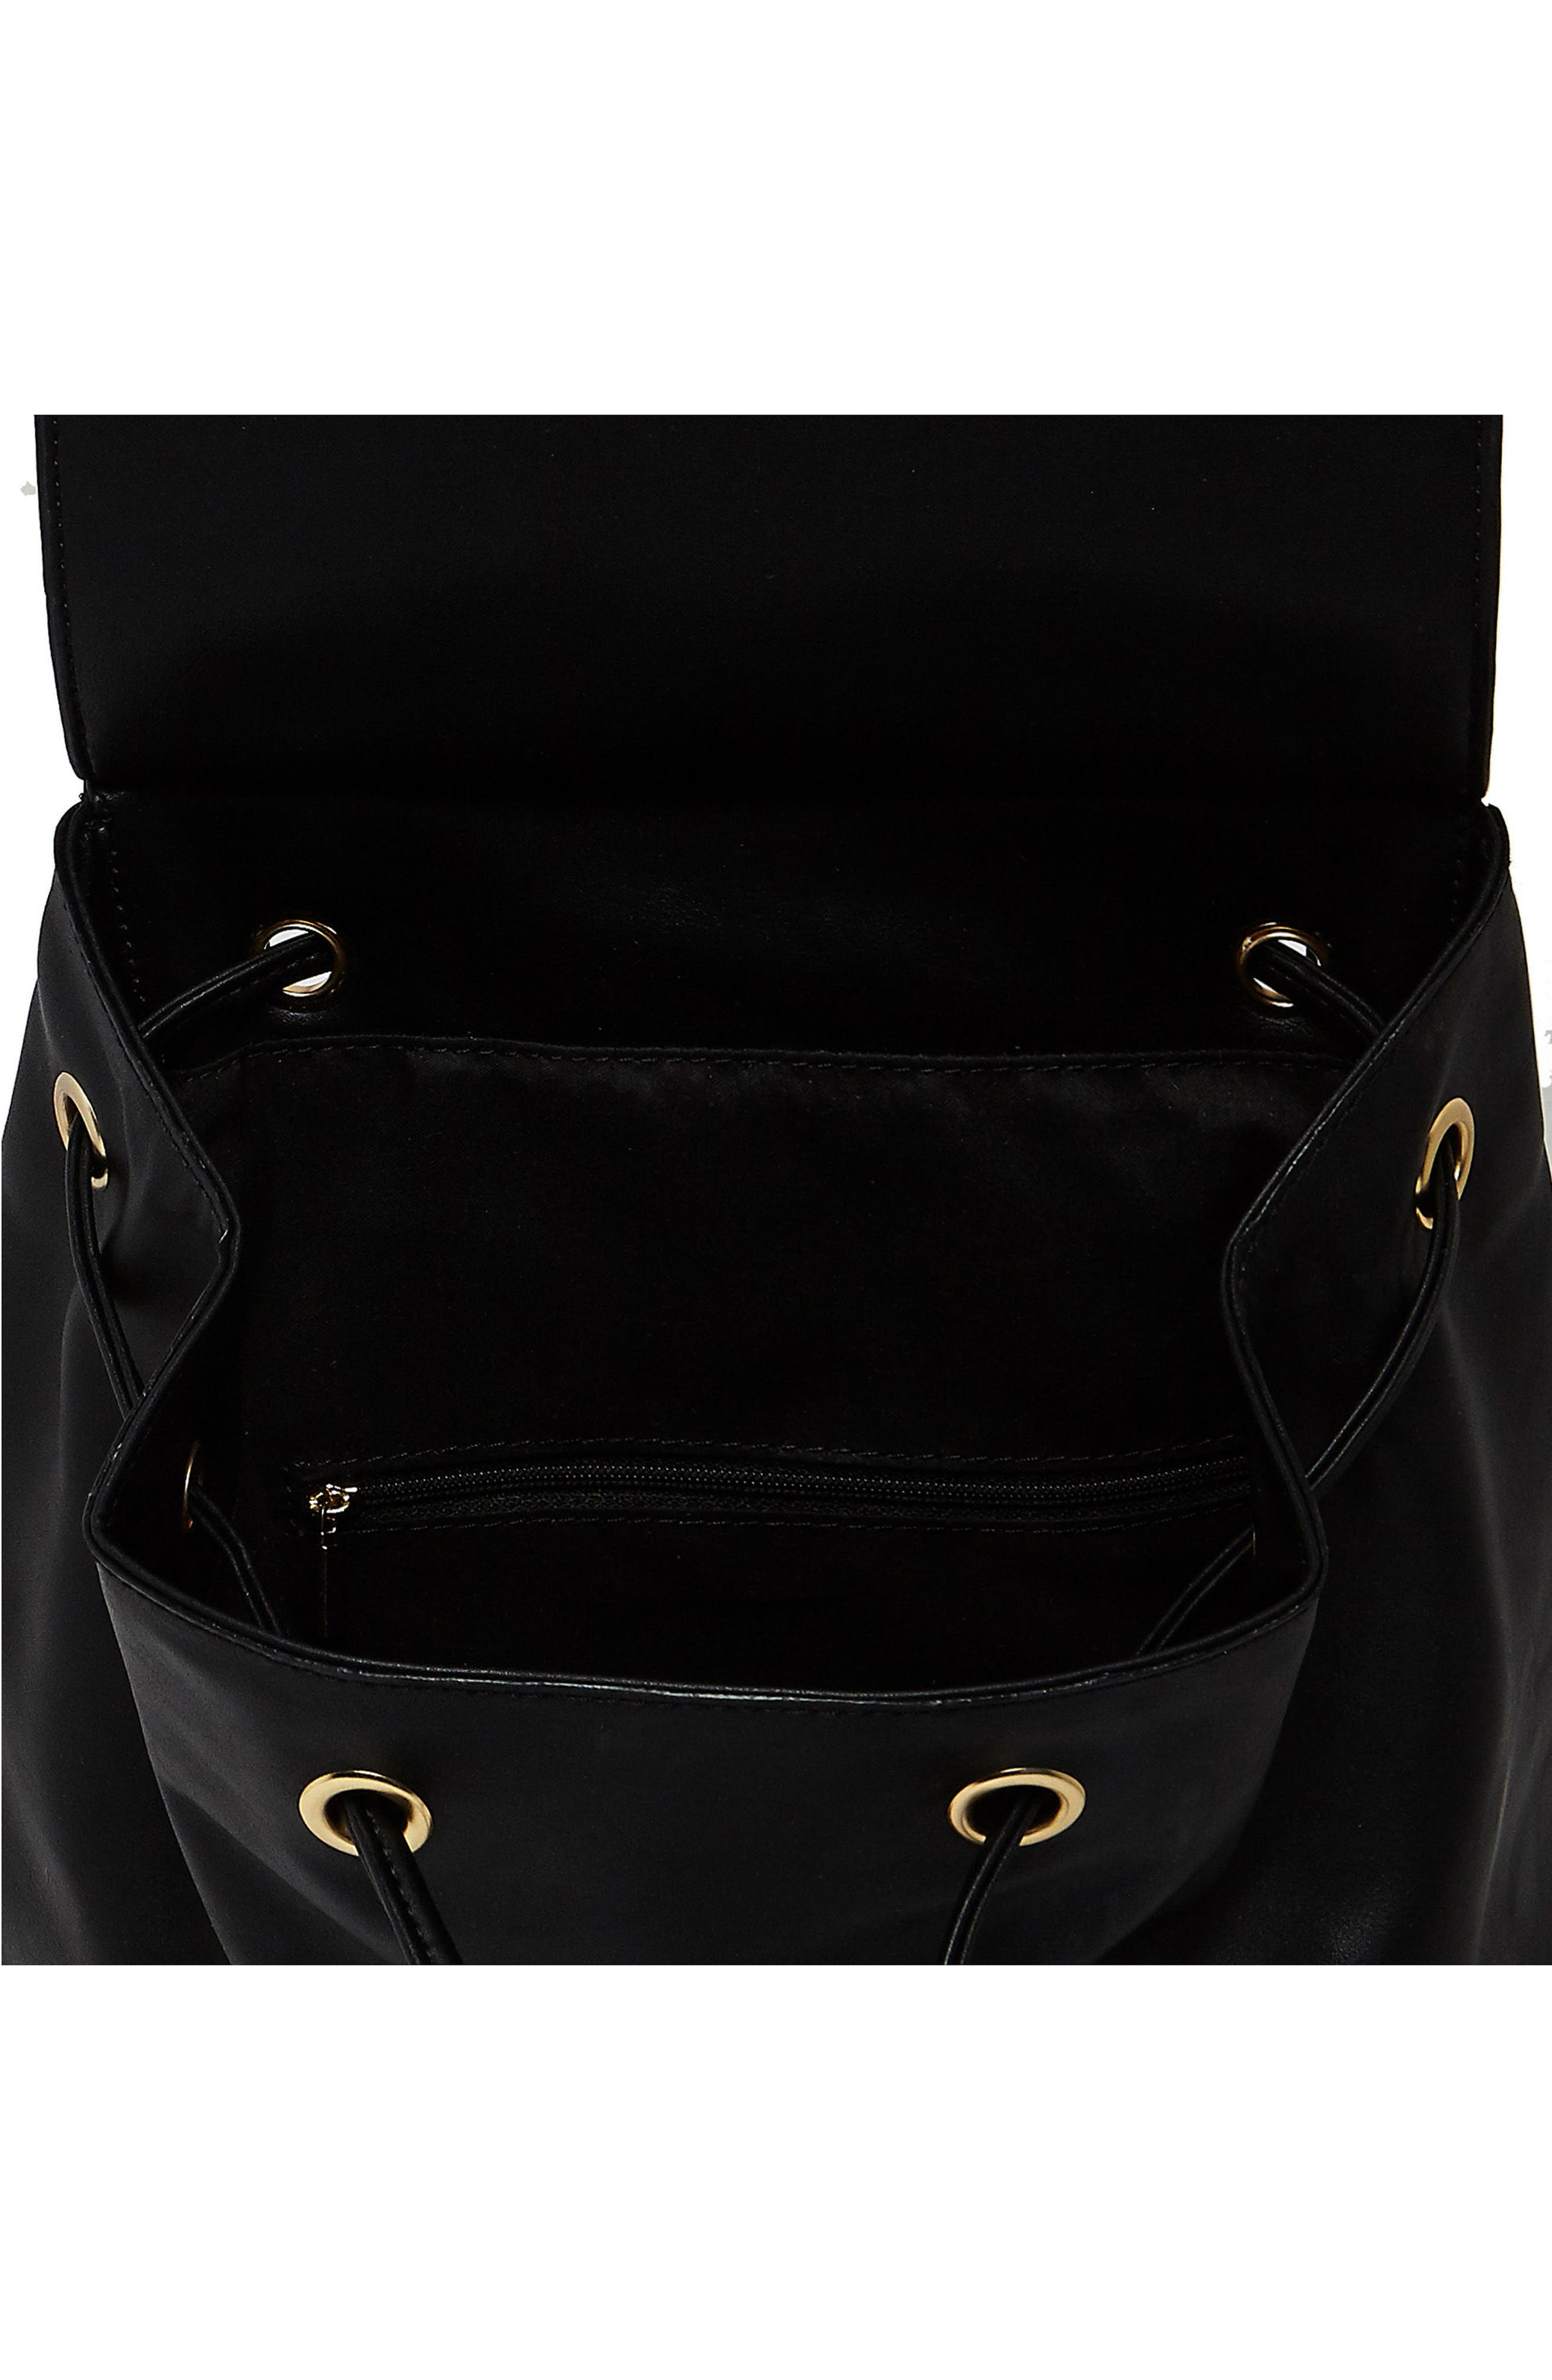 Hide & Seek Vegan Leather Backpack,                             Alternate thumbnail 3, color,                             Black